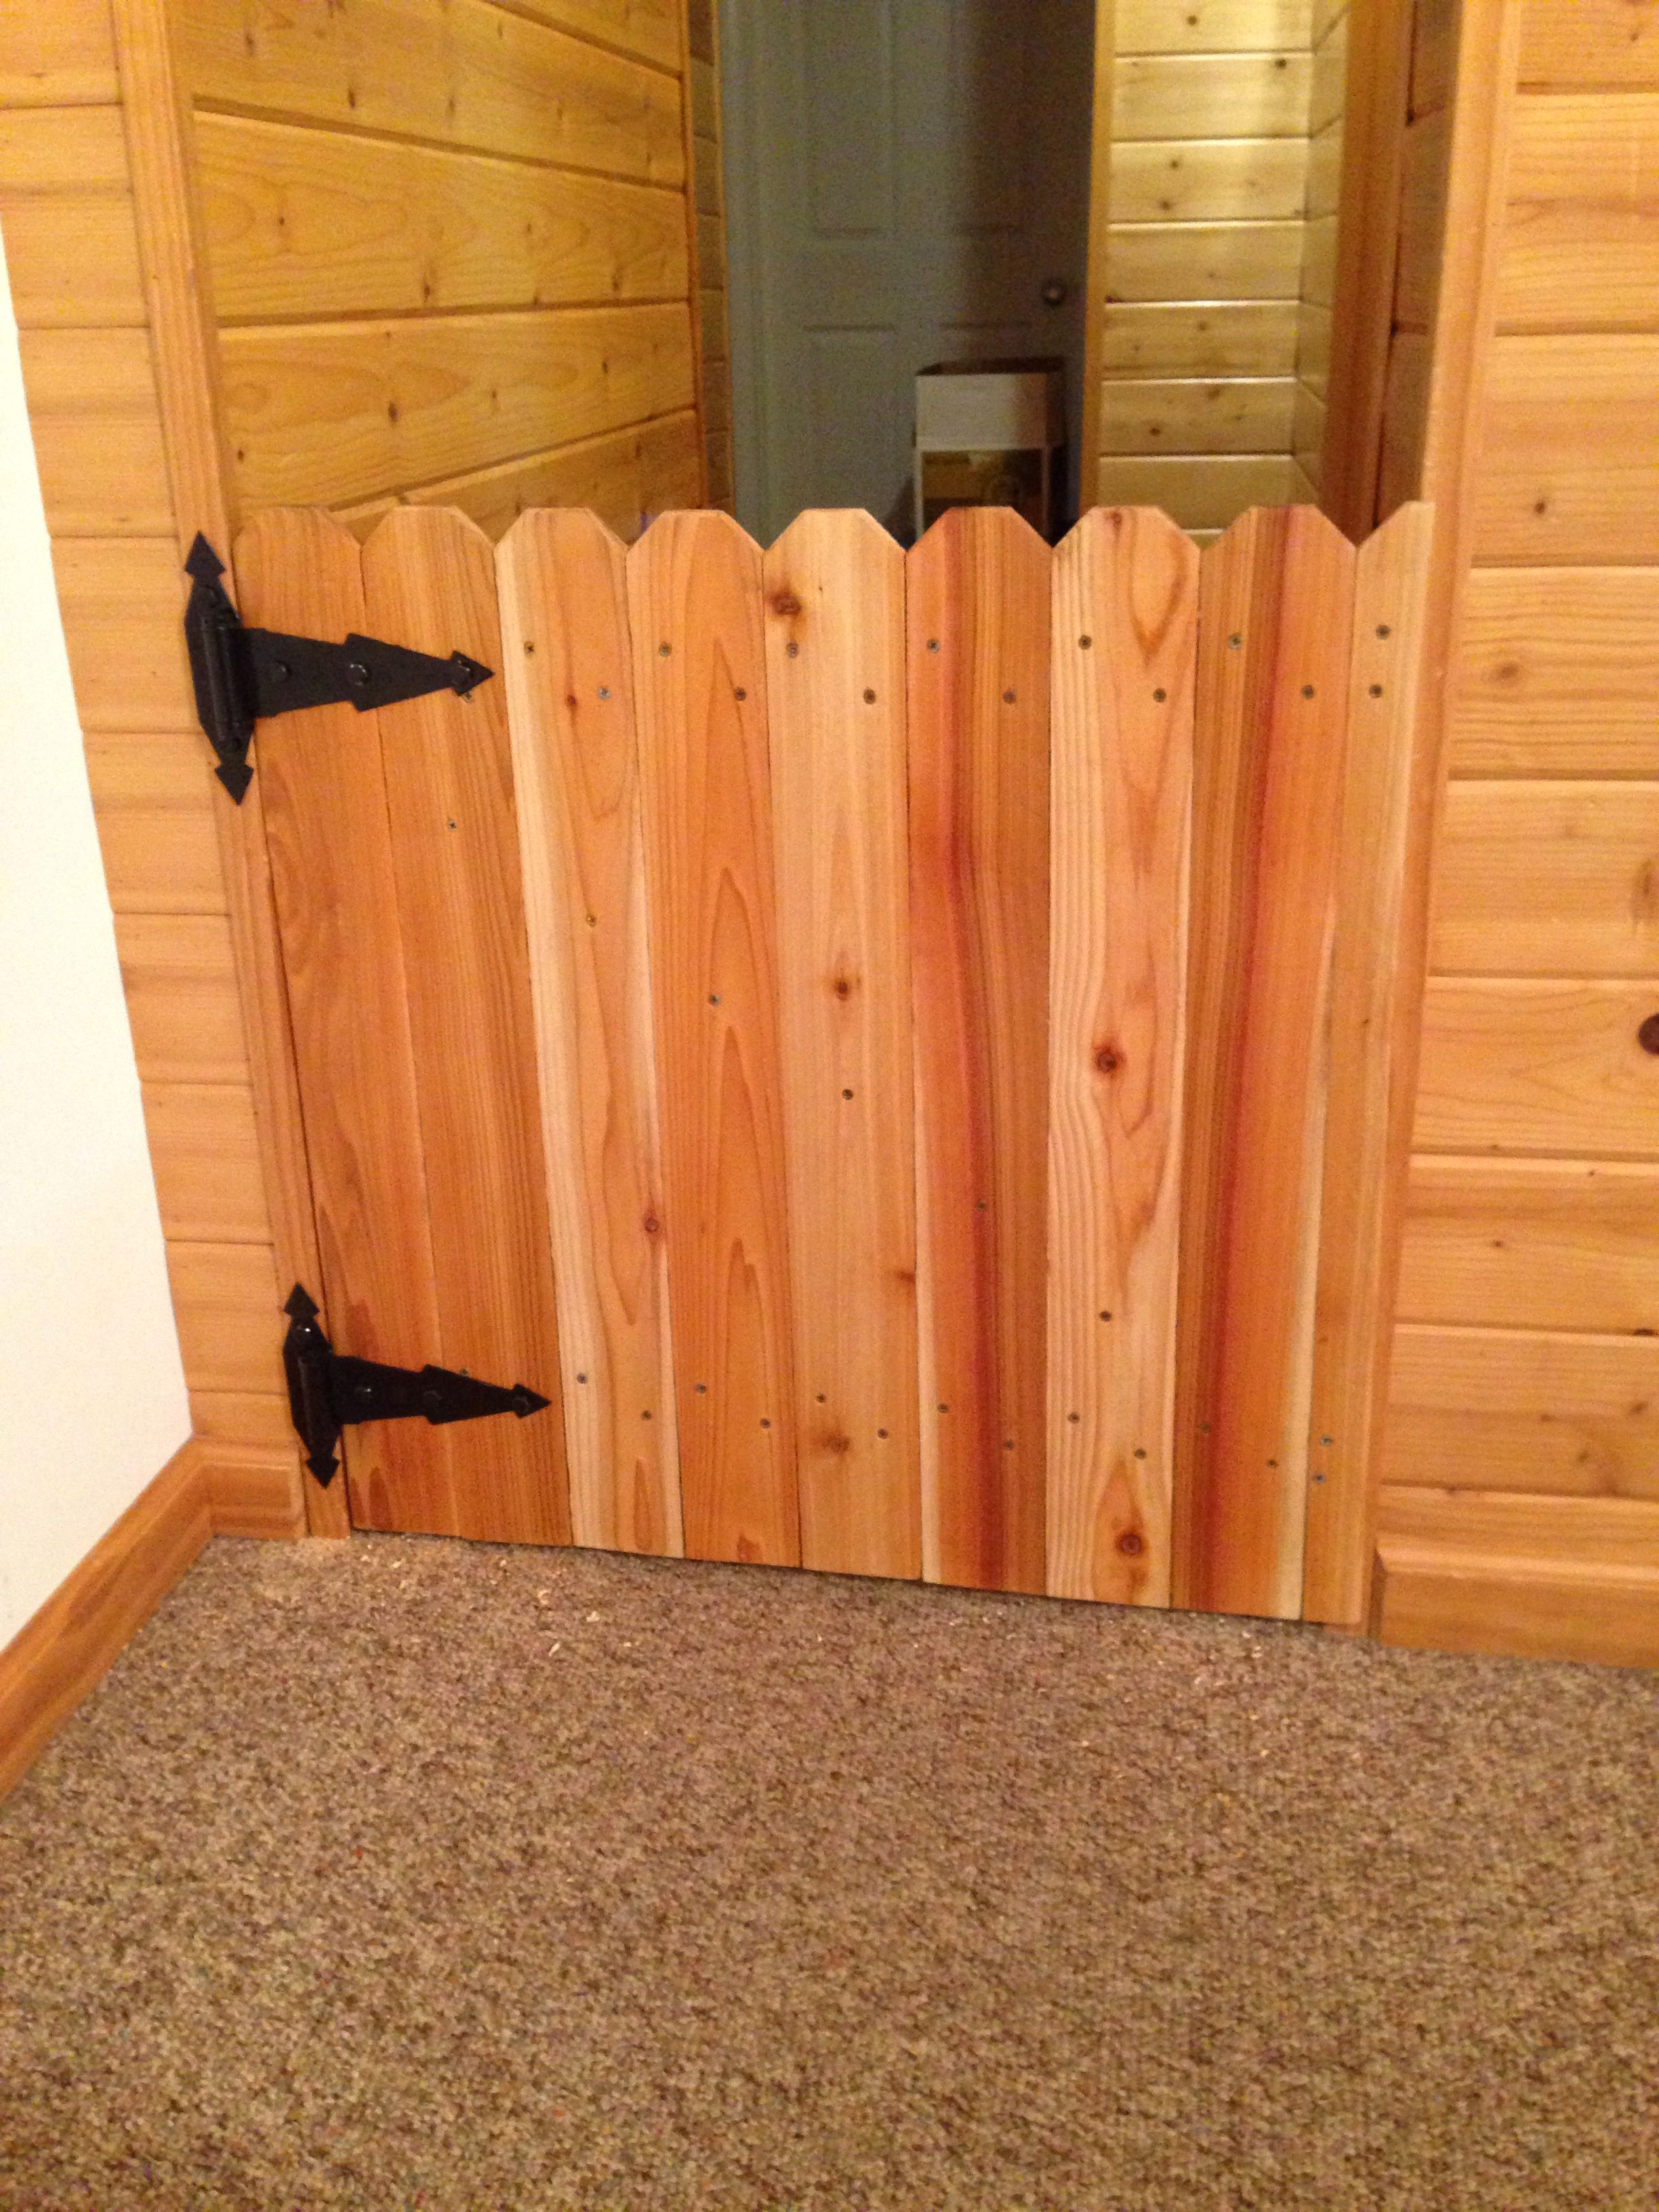 A Baby Gate Designed To Look Like A Garden Gate 3 5 X 6 Cedar